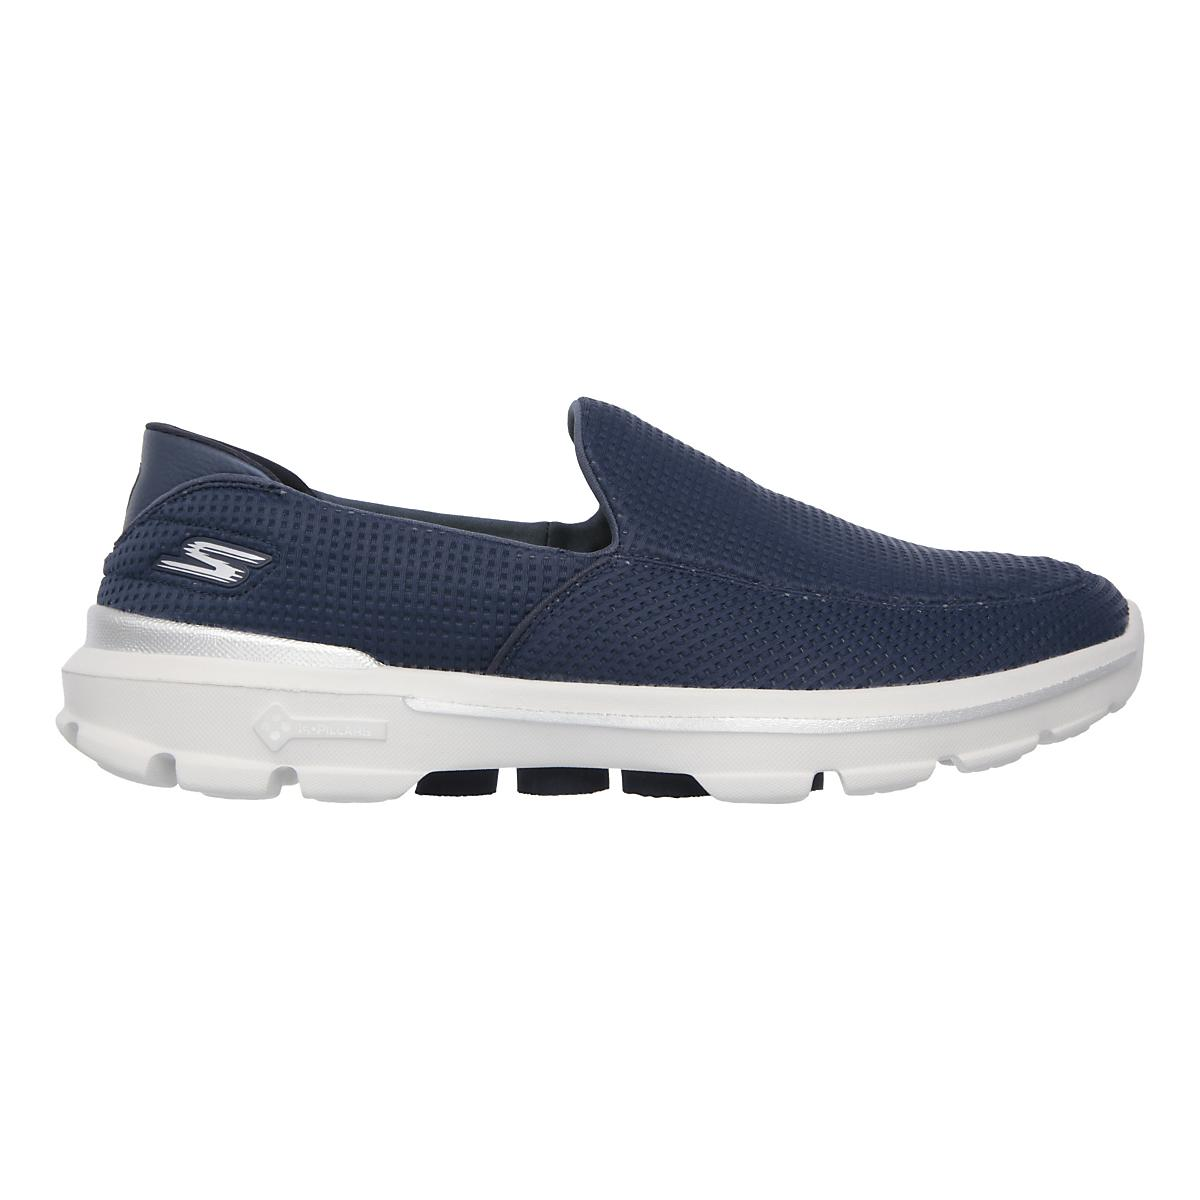 c48e0a8290 Mens Skechers GO Walk 3 Unfold Casual Shoe at Road Runner Sports